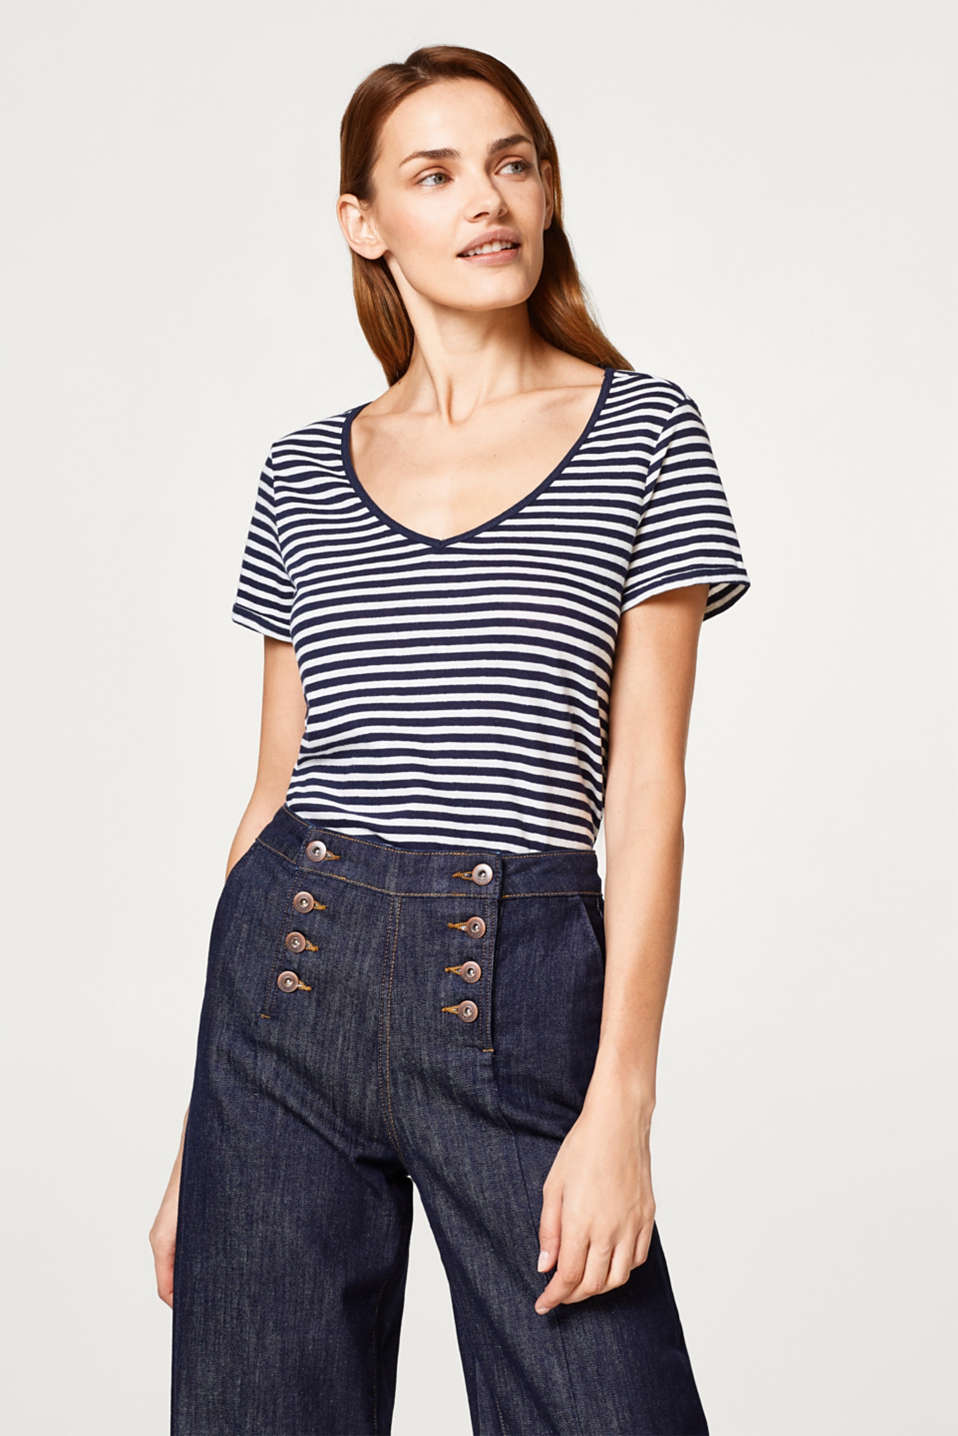 Esprit - Soft, blended linen T-shirt in a striped look